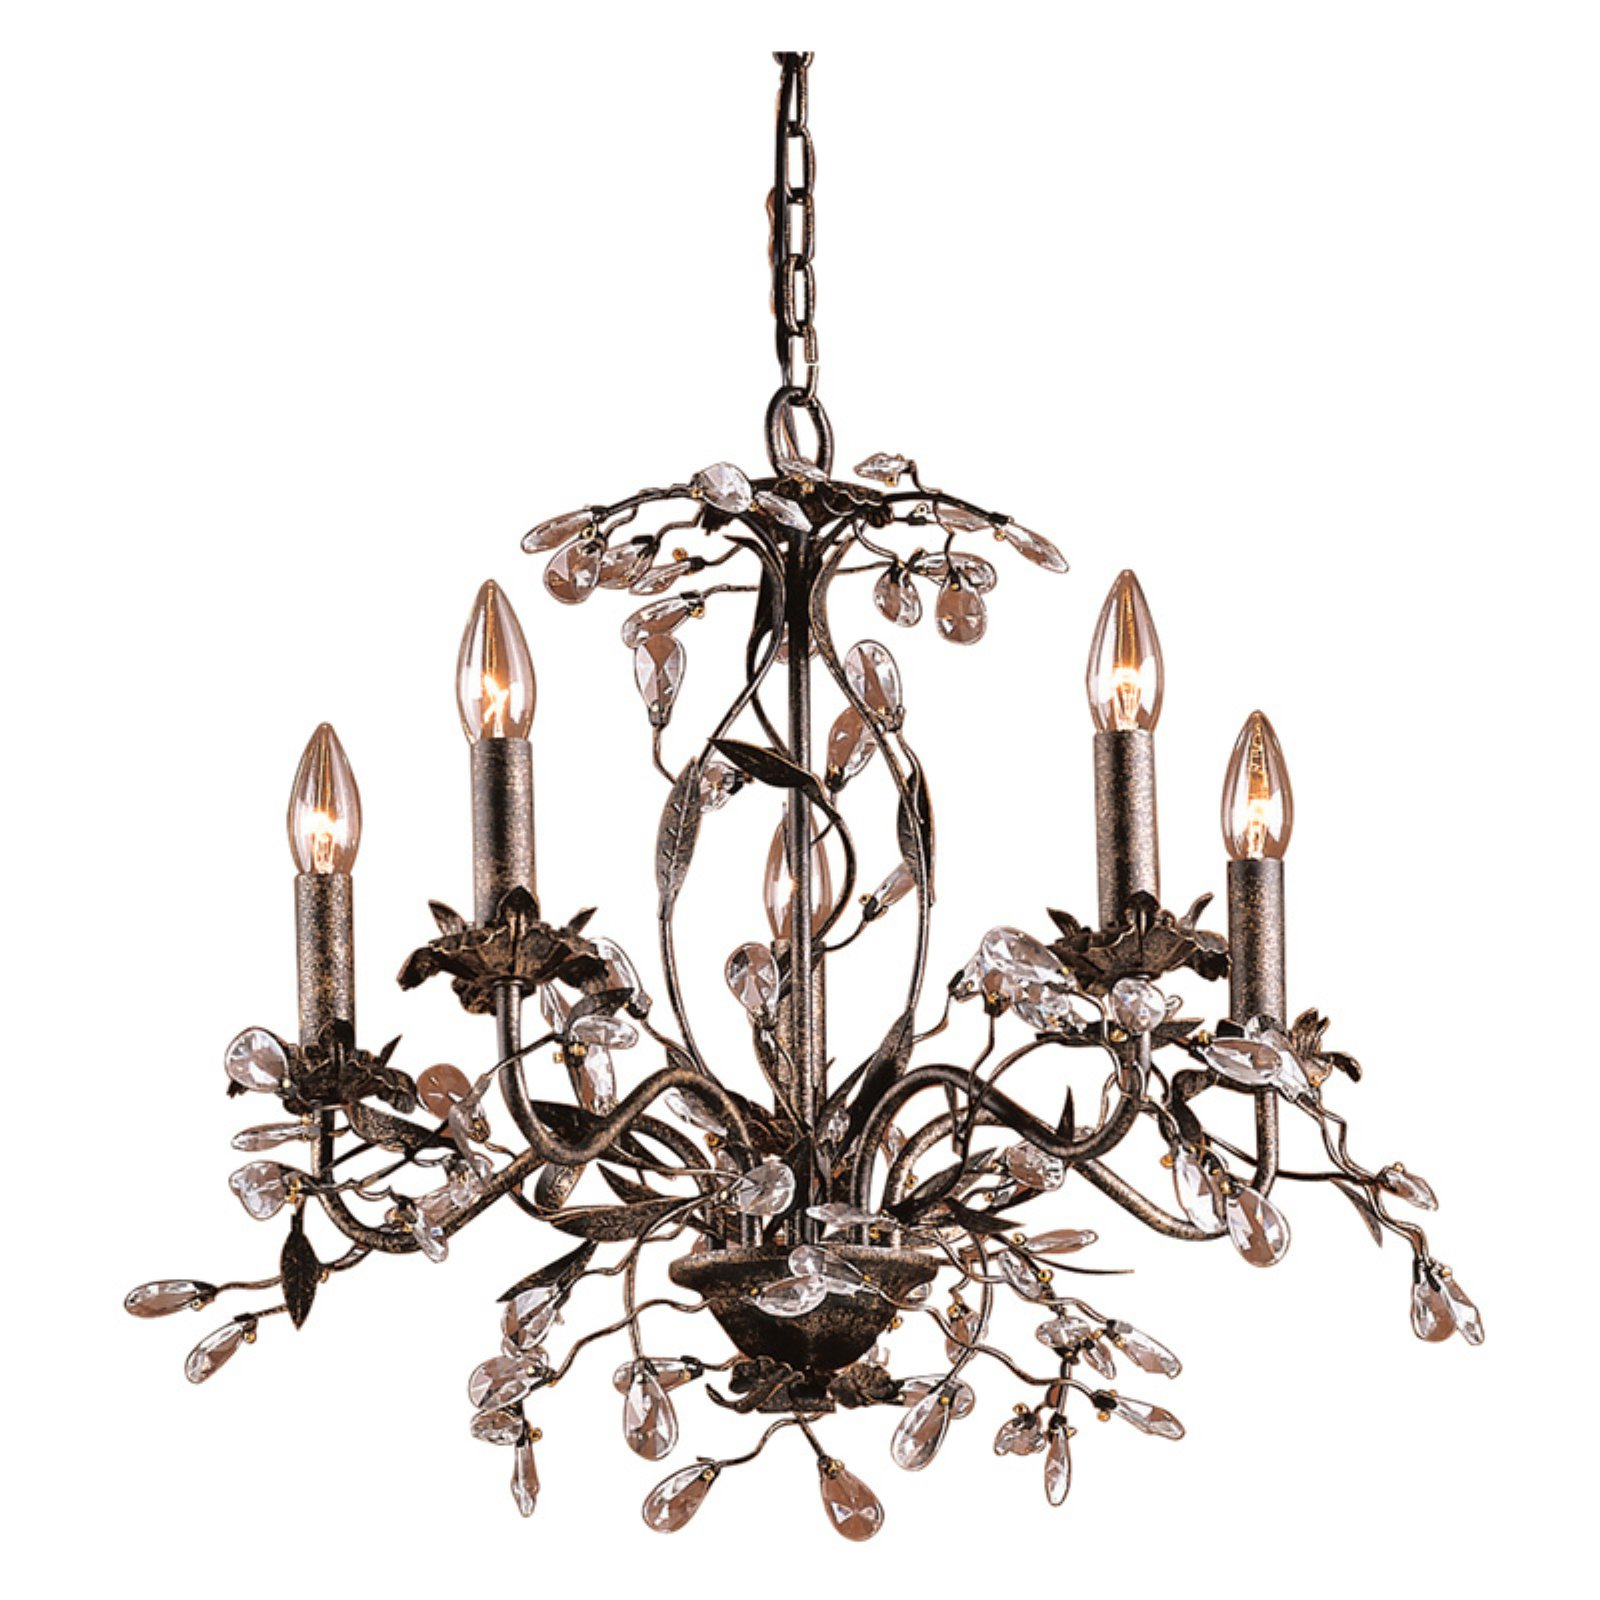 Products Intended For Most Recent Hesse 5 Light Candle Style Chandeliers (View 21 of 25)